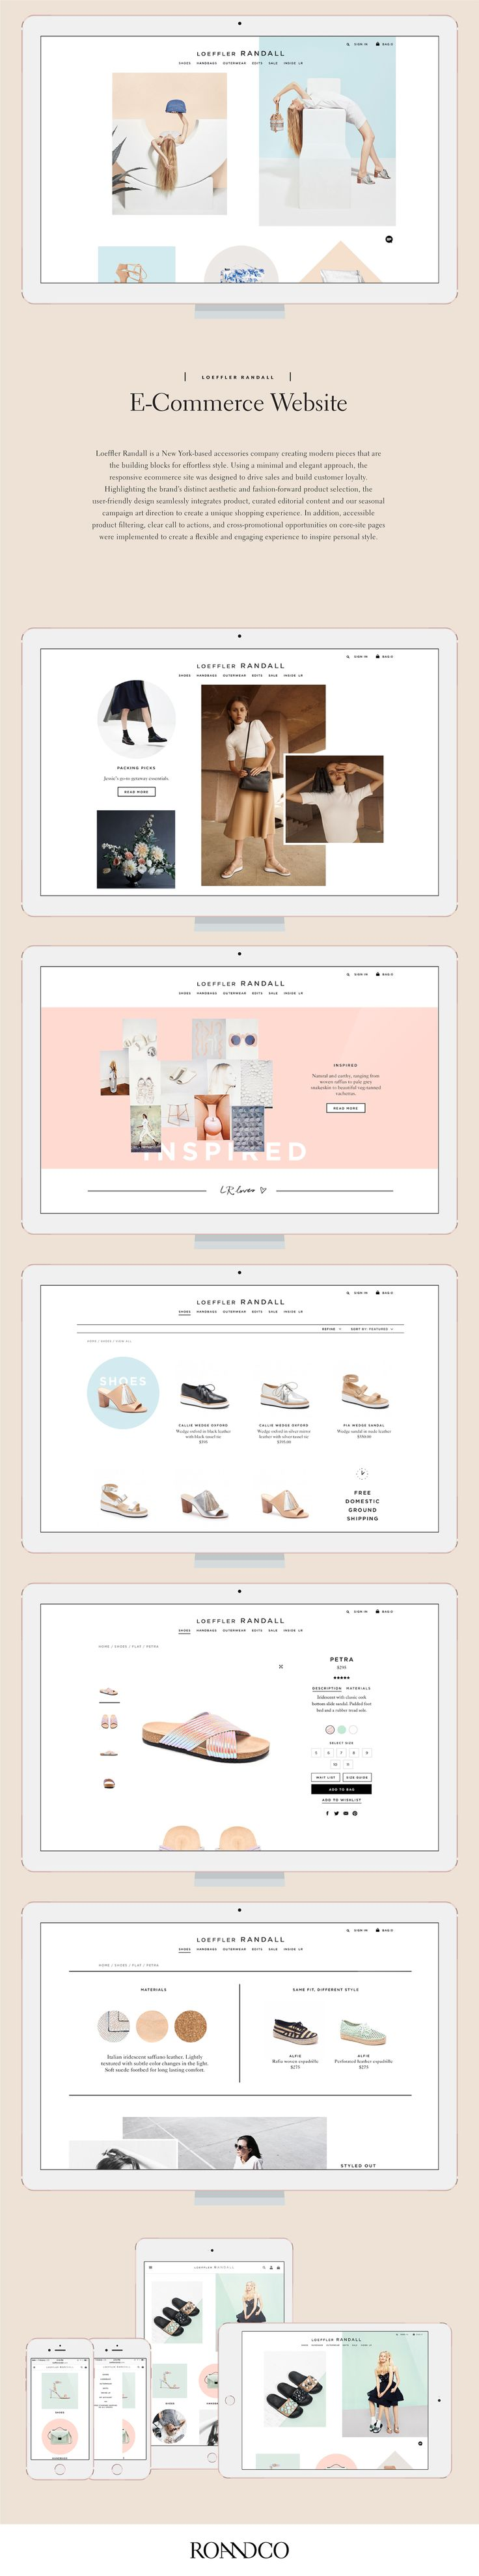 Loeffler Randall is a New York-based accessories company creating modern pieces that are the building blocks for effortless style. Using a minimal and elegant approach, the responsive ecommerce site was designed to drive sales and build customer loyalty.  http://ecommerce.jrstudioweb.com/